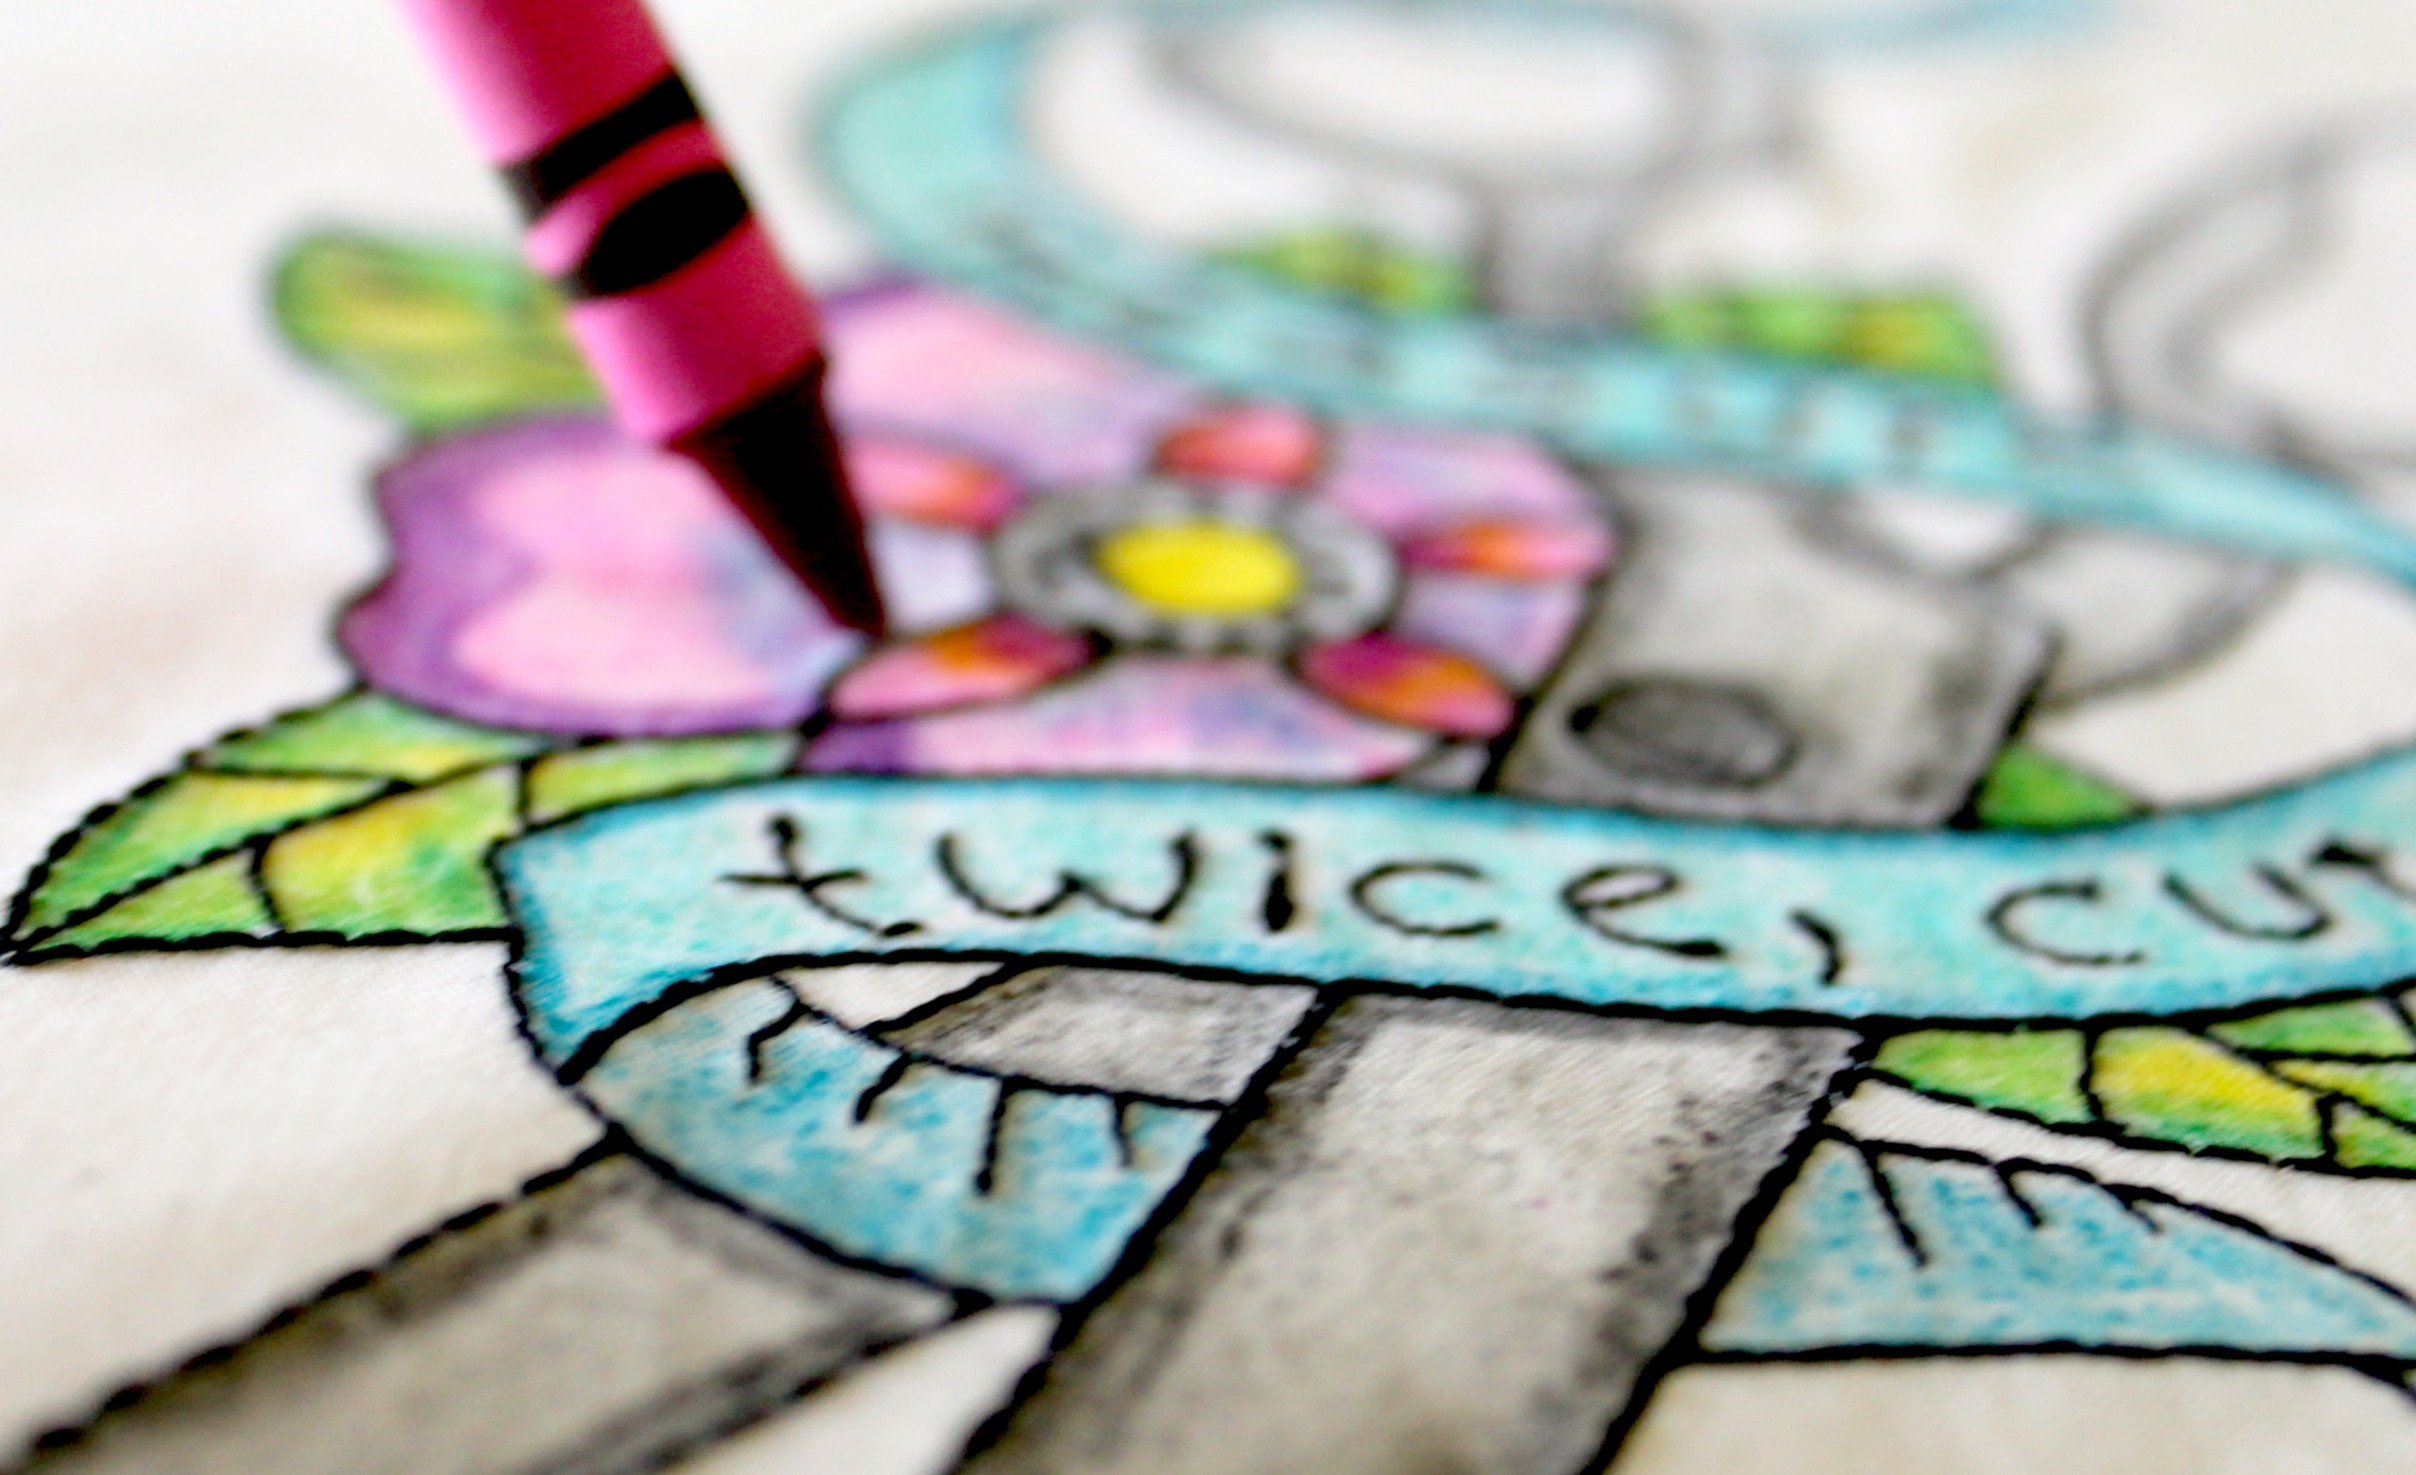 Machine Embroidery and Coloring with Crayons | WeAllSew